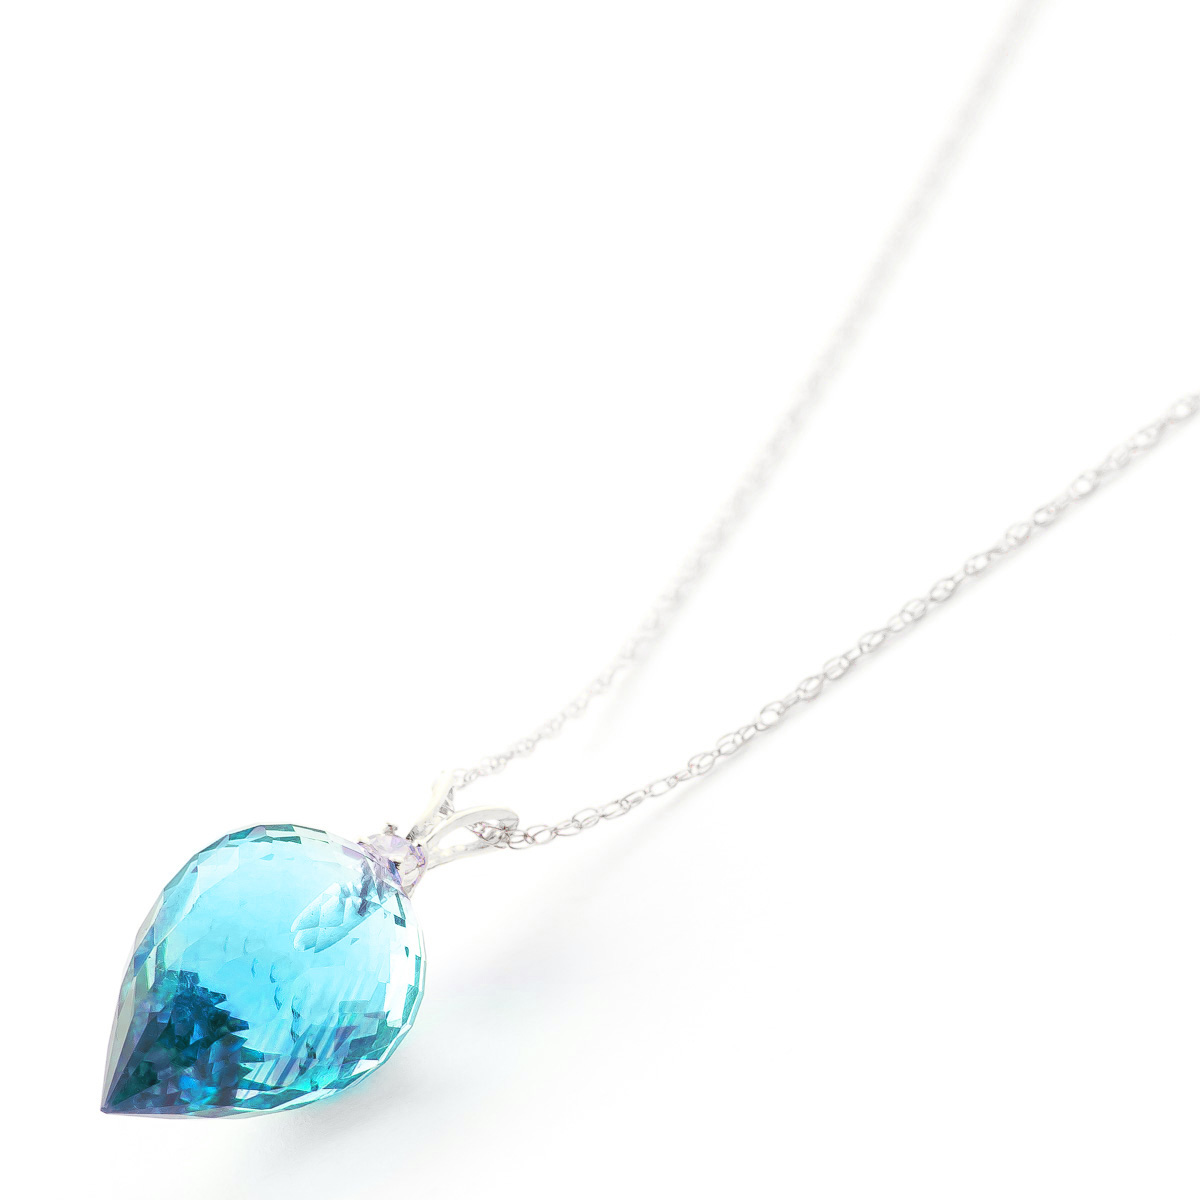 Pointed Briolette Cut Blue Topaz Pendant Necklace 11.3 ctw in 9ct White Gold